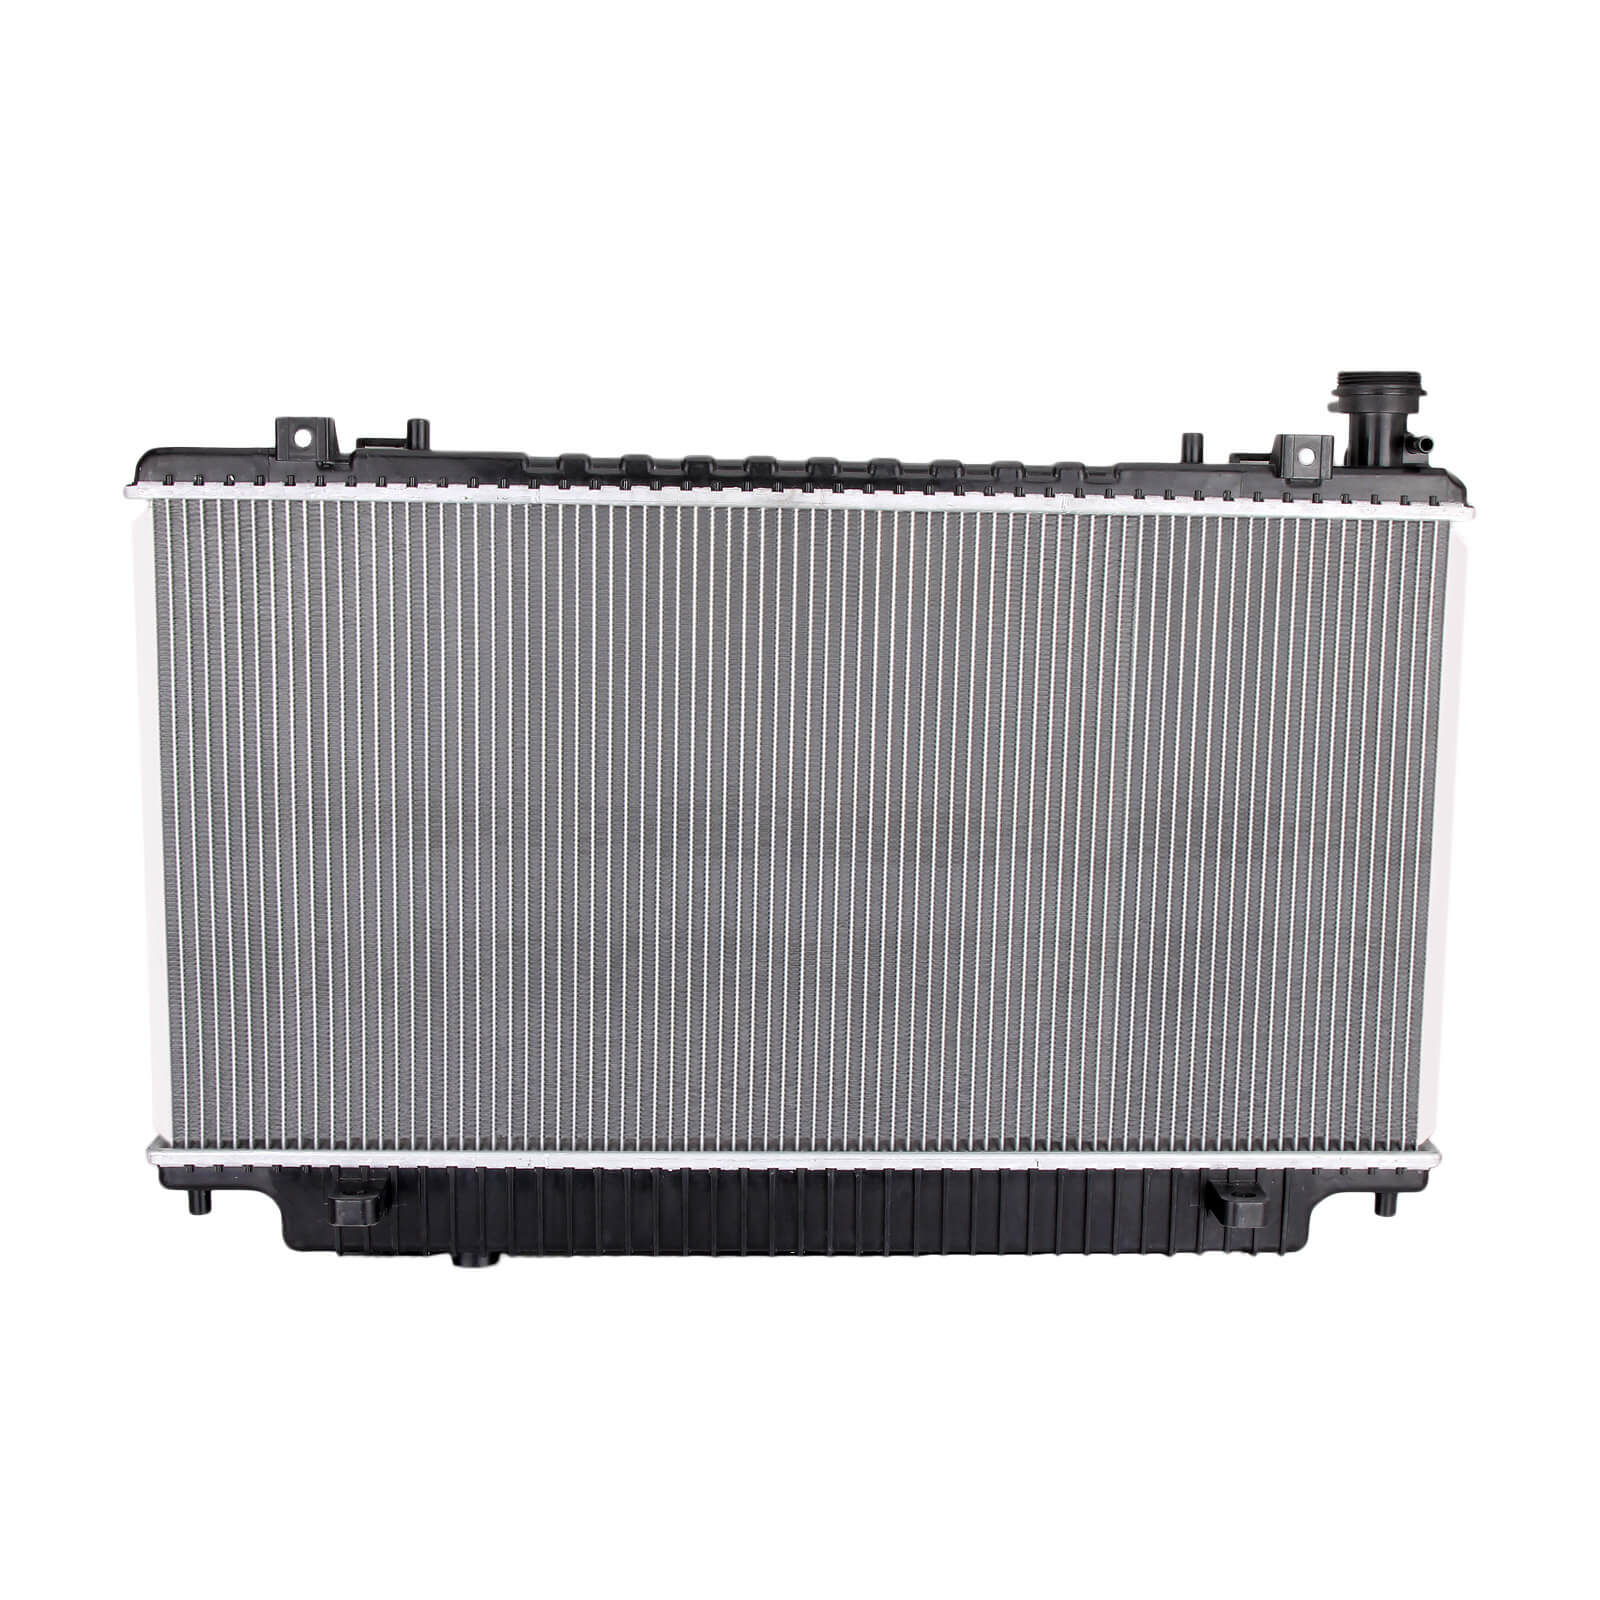 Dromedary Radiator Holden Commodore VE Series V8 Engine 2006-2013 Auto/Man Premium Quality HOLDEN RADIATOR image10